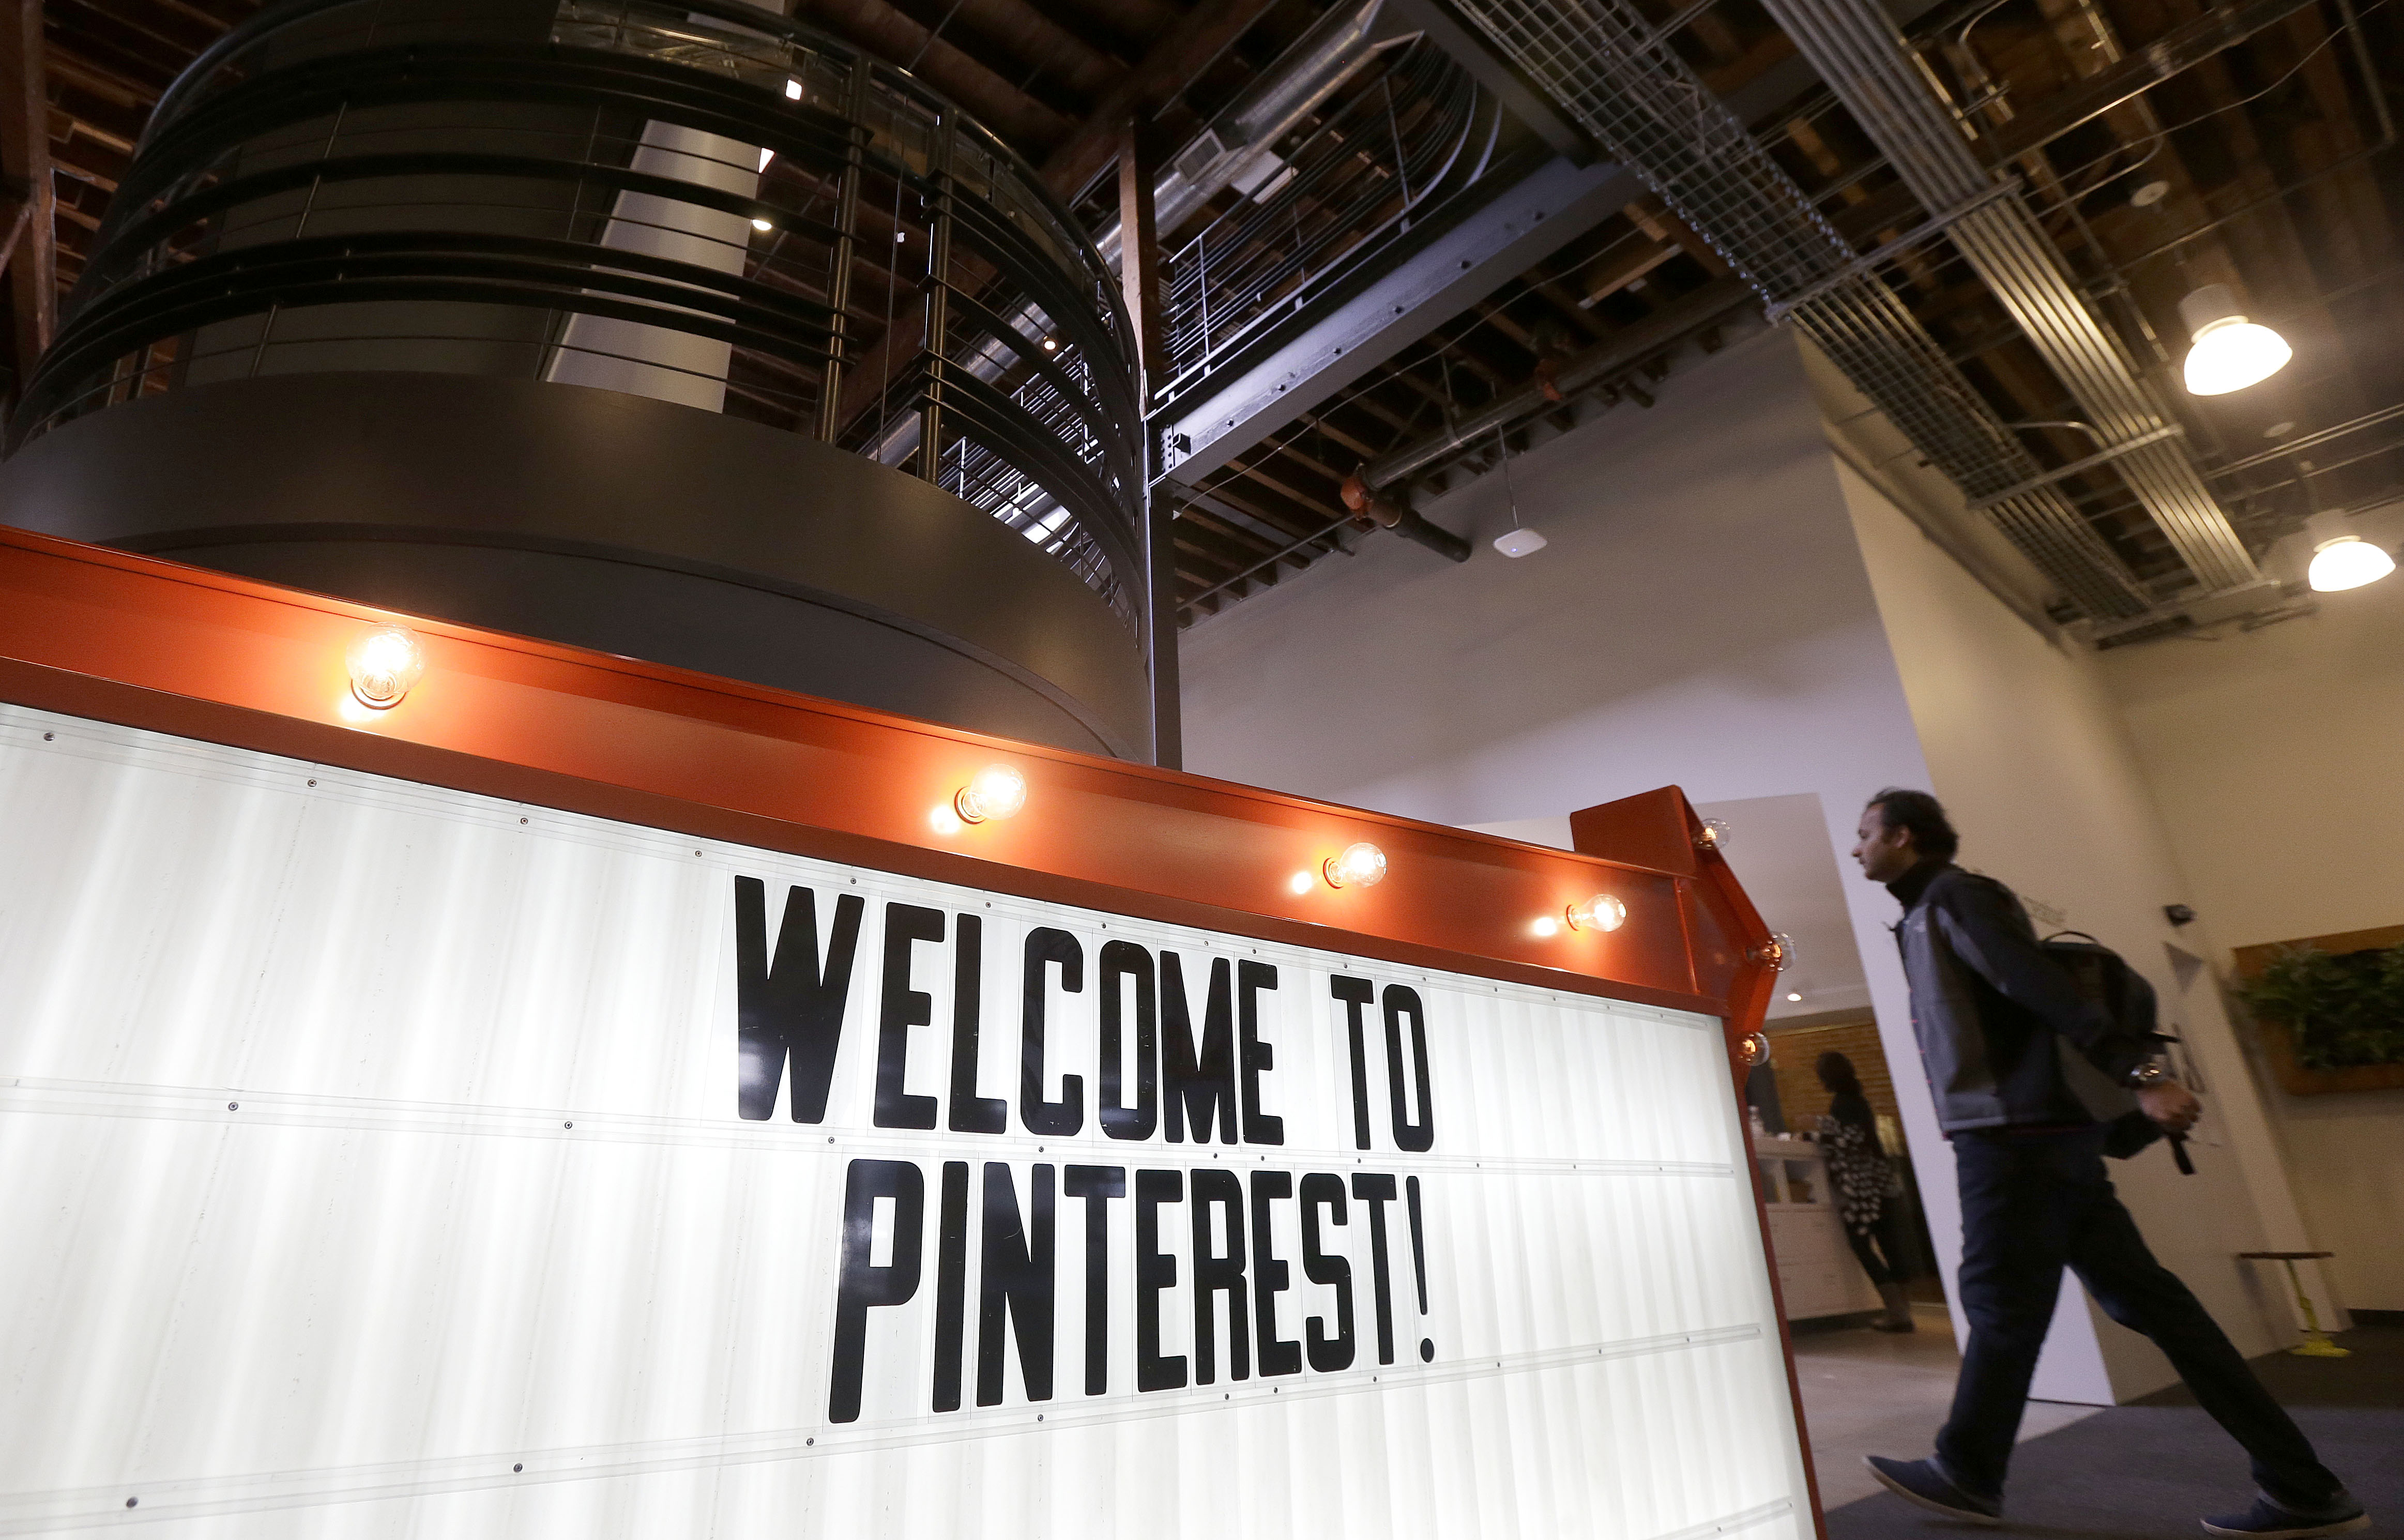 A man walks past a sign at the Pinterest office in San Francisco, Wednesday, April 1, 2015. The San Francisco-based venture capital darling celebrated its fifth birthday in March 2015. (AP Photo/Jeff Chiu)